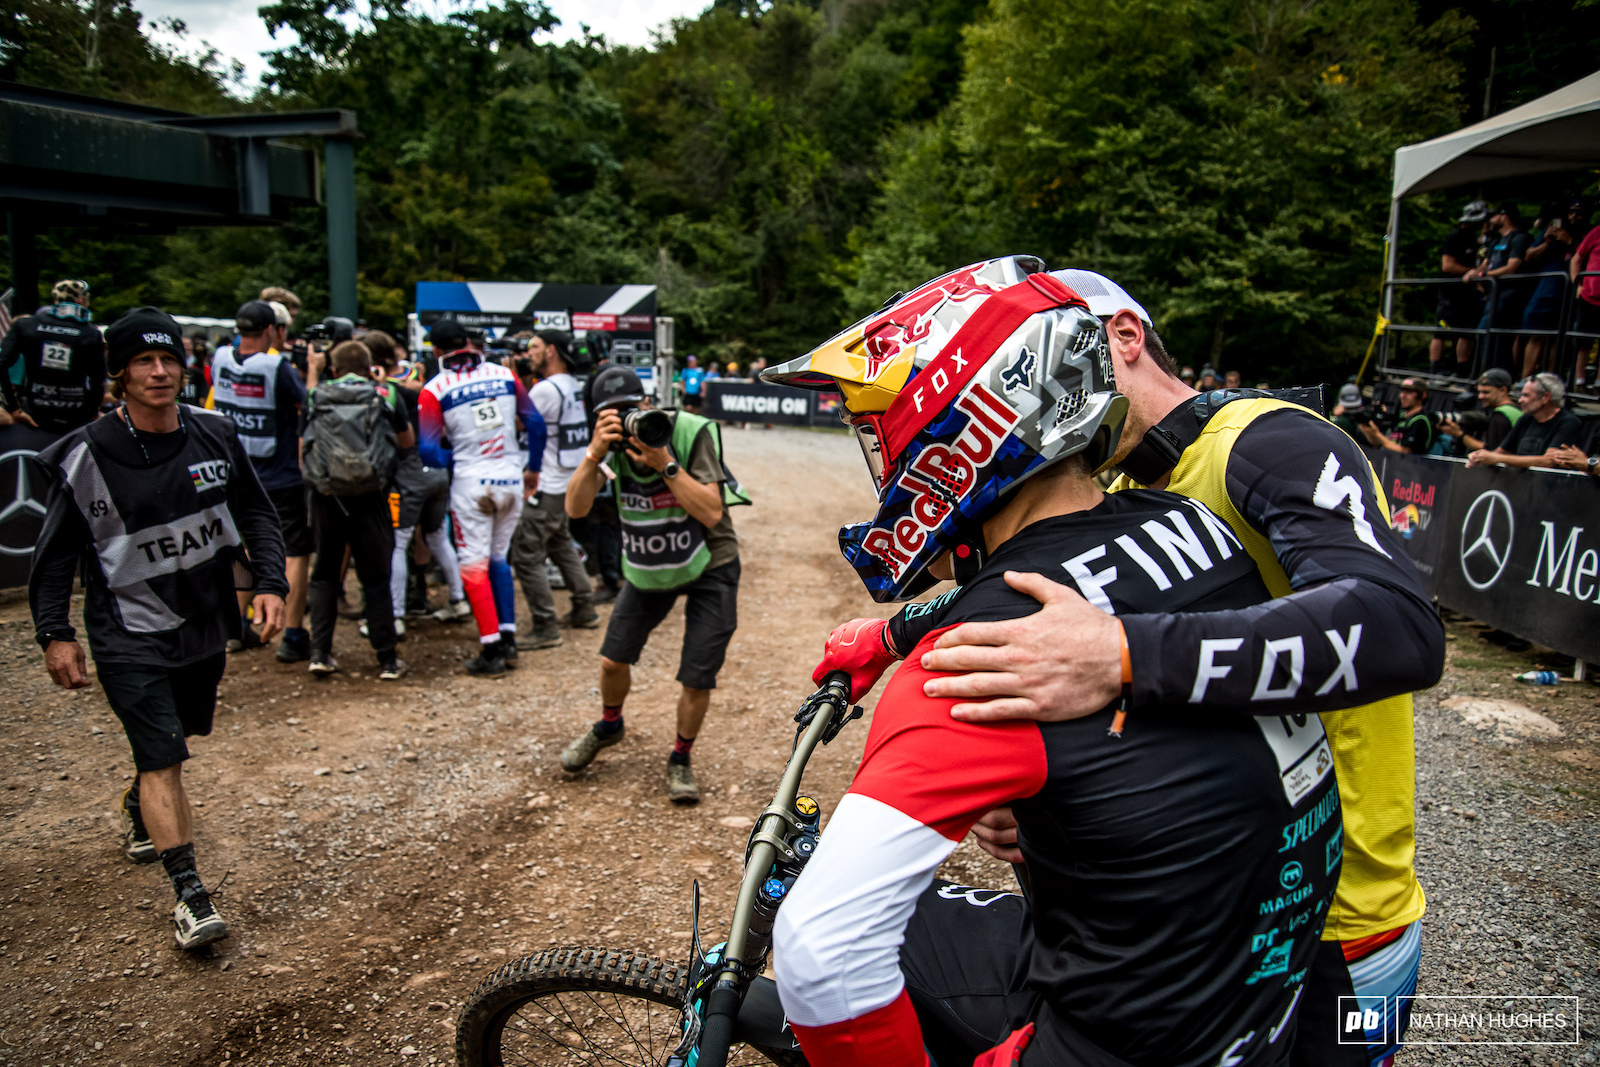 Bruni consoles and congratulates the last man down the mountain on his podium finish.